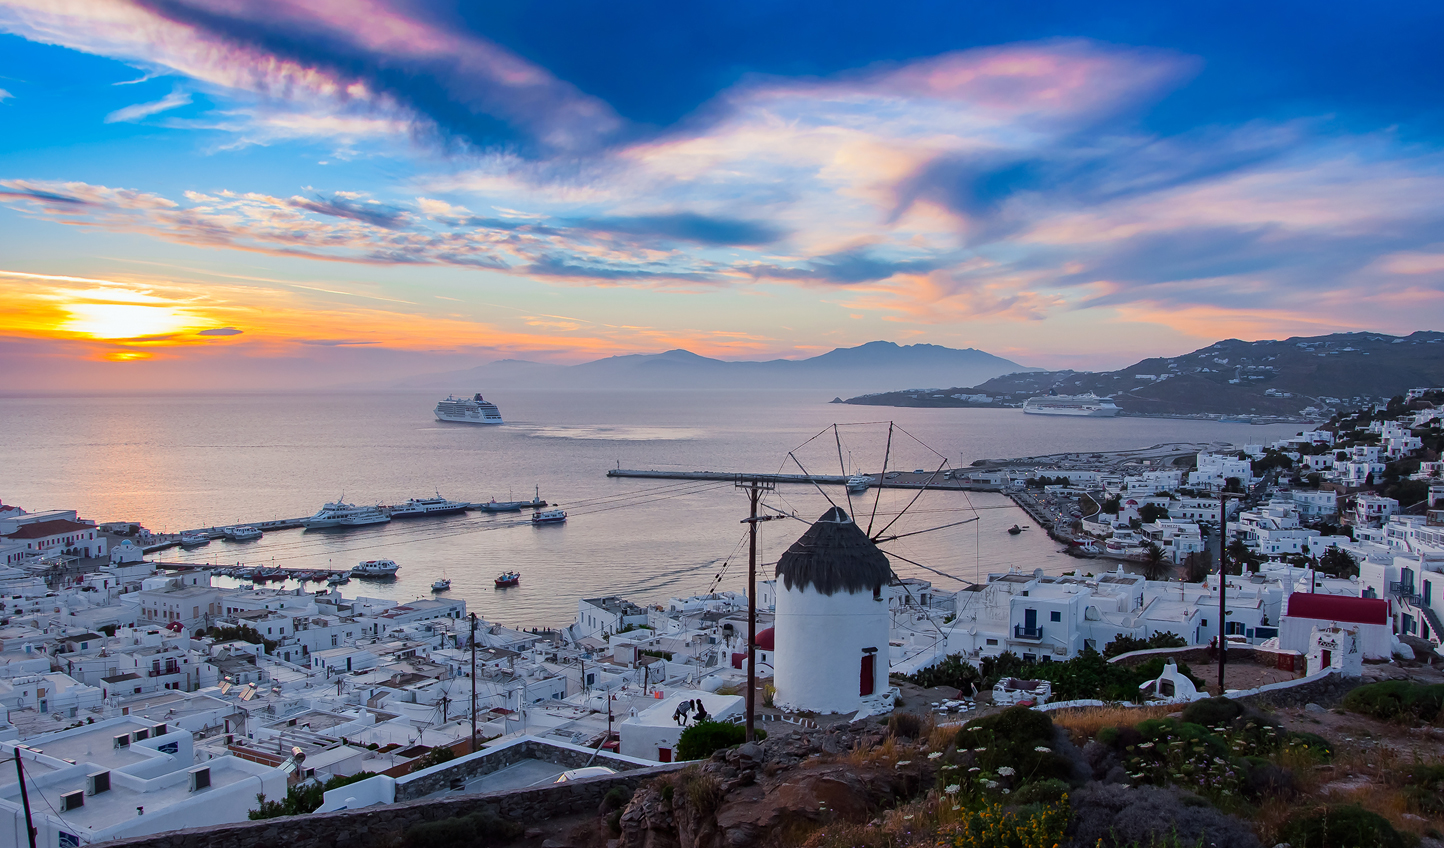 Picture perfect views over Mykonos